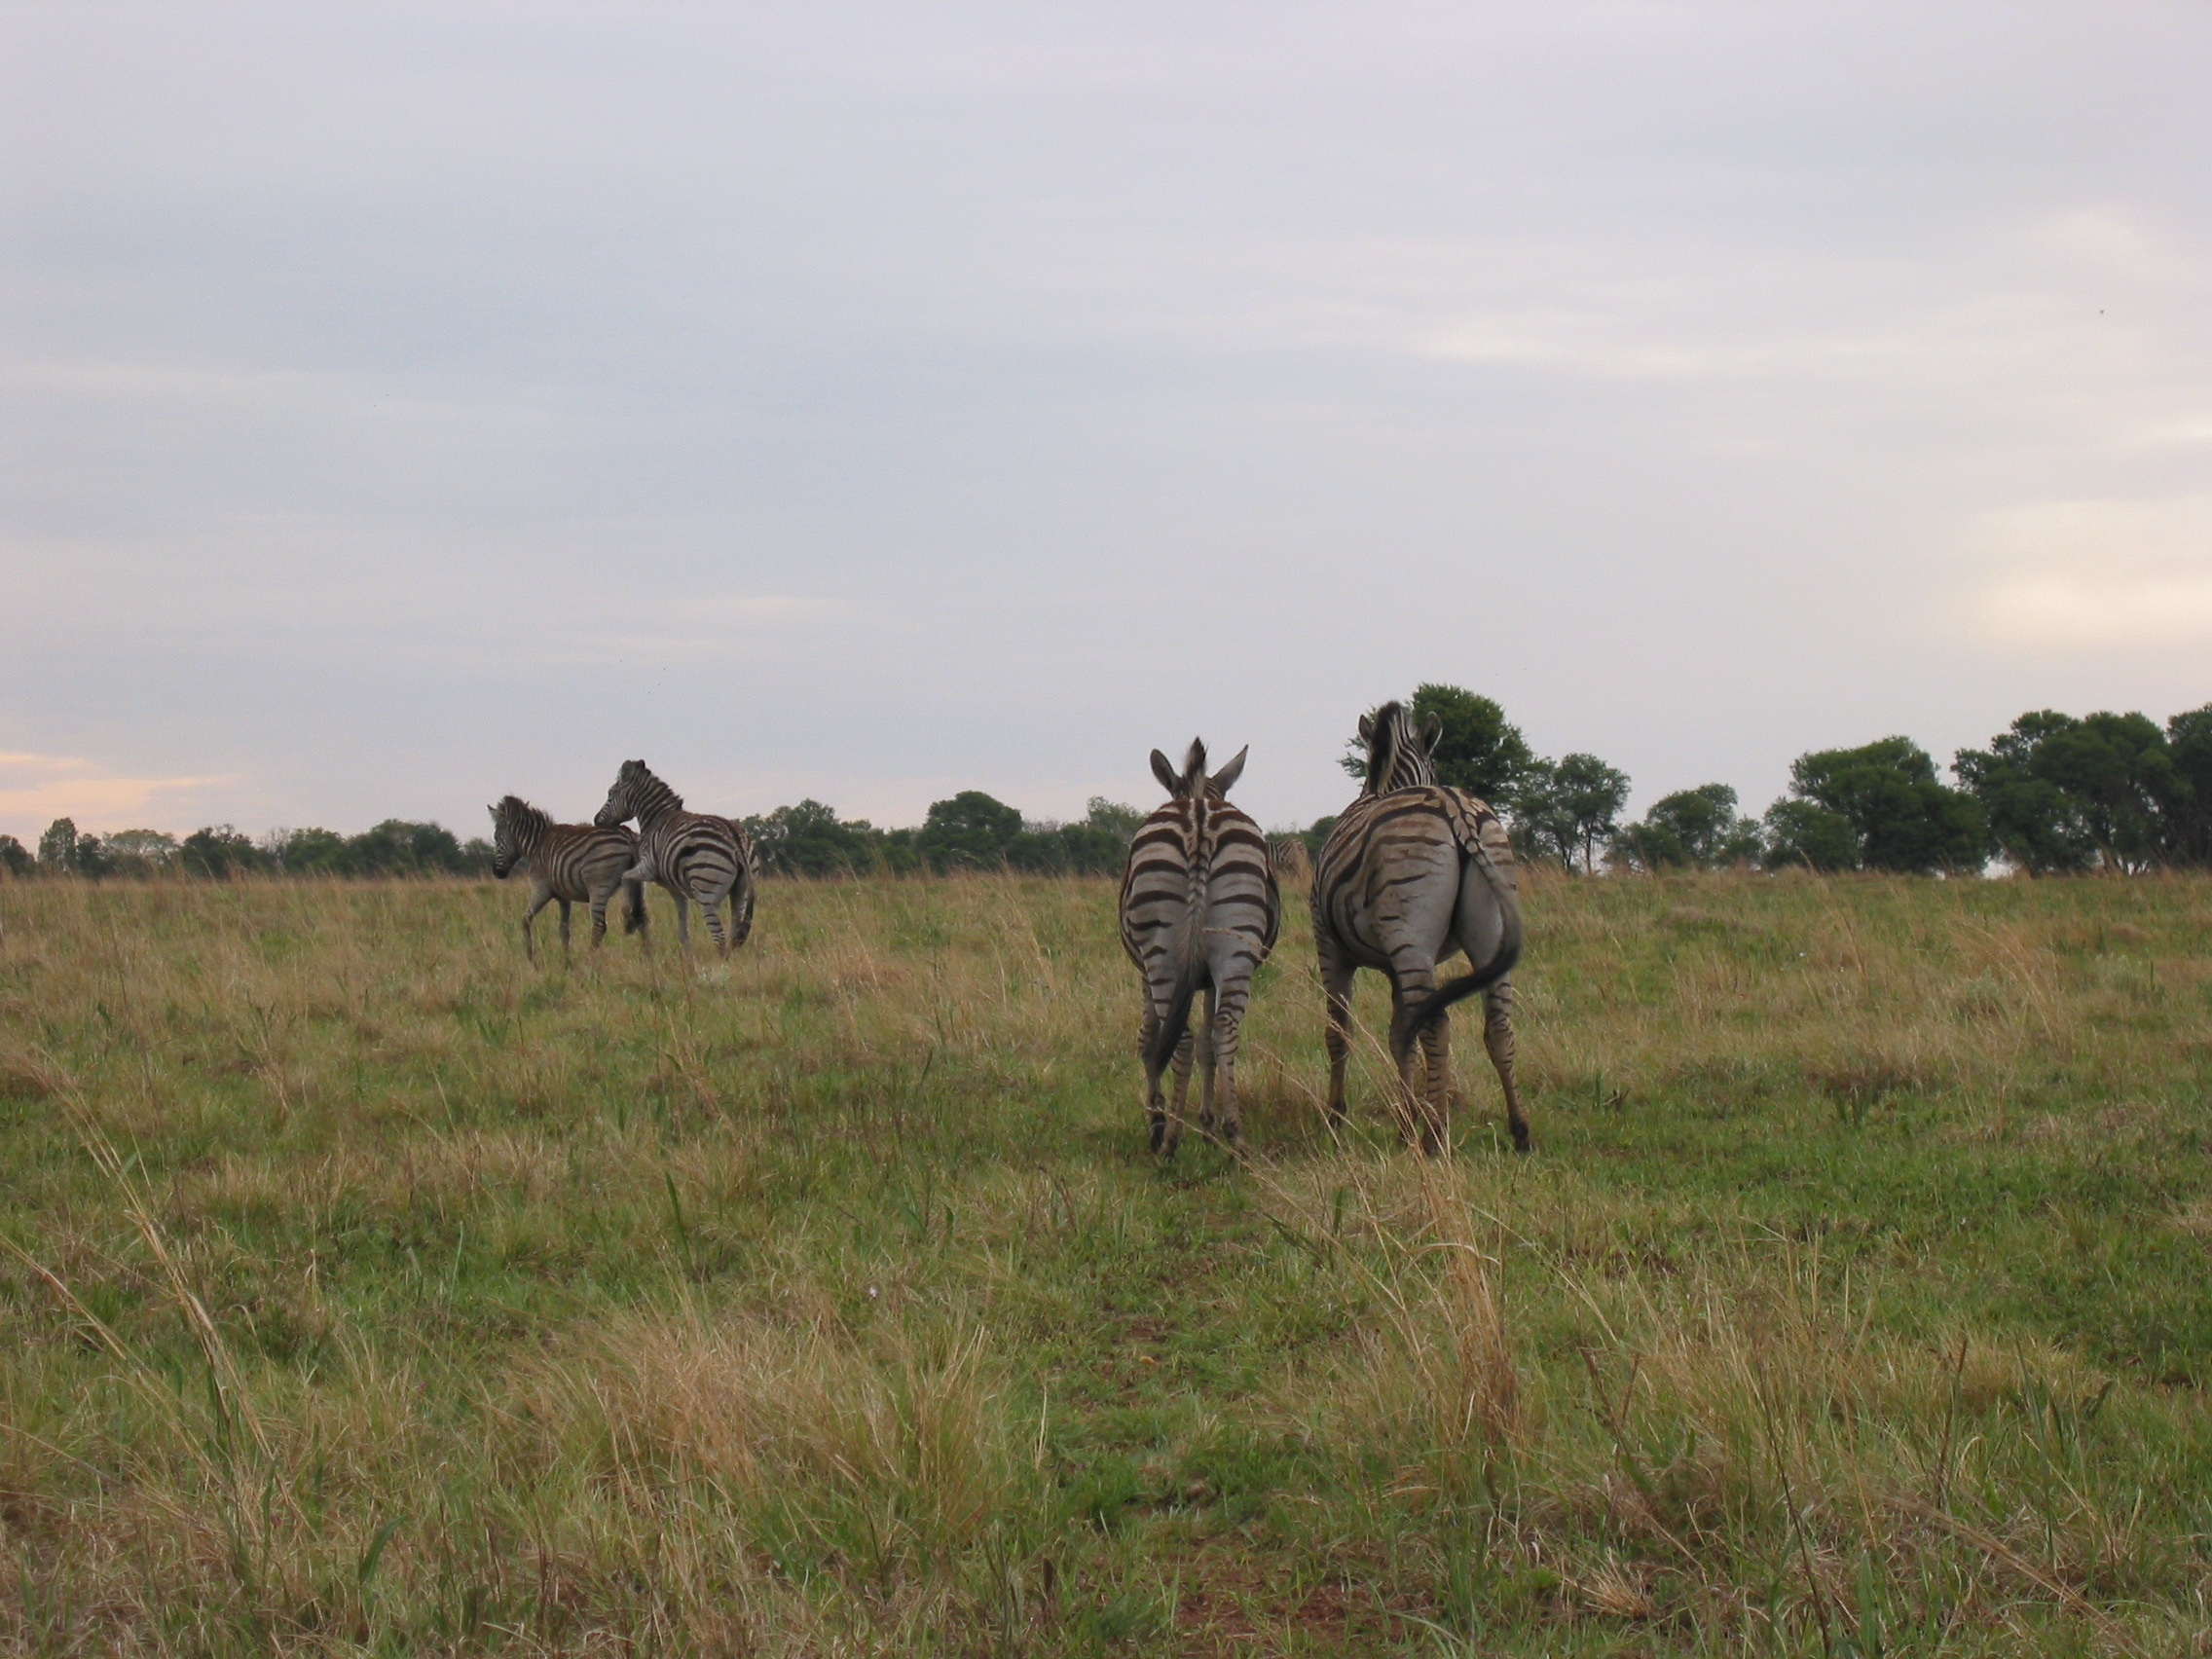 Tales from the road: the longest daytrip with the zebra